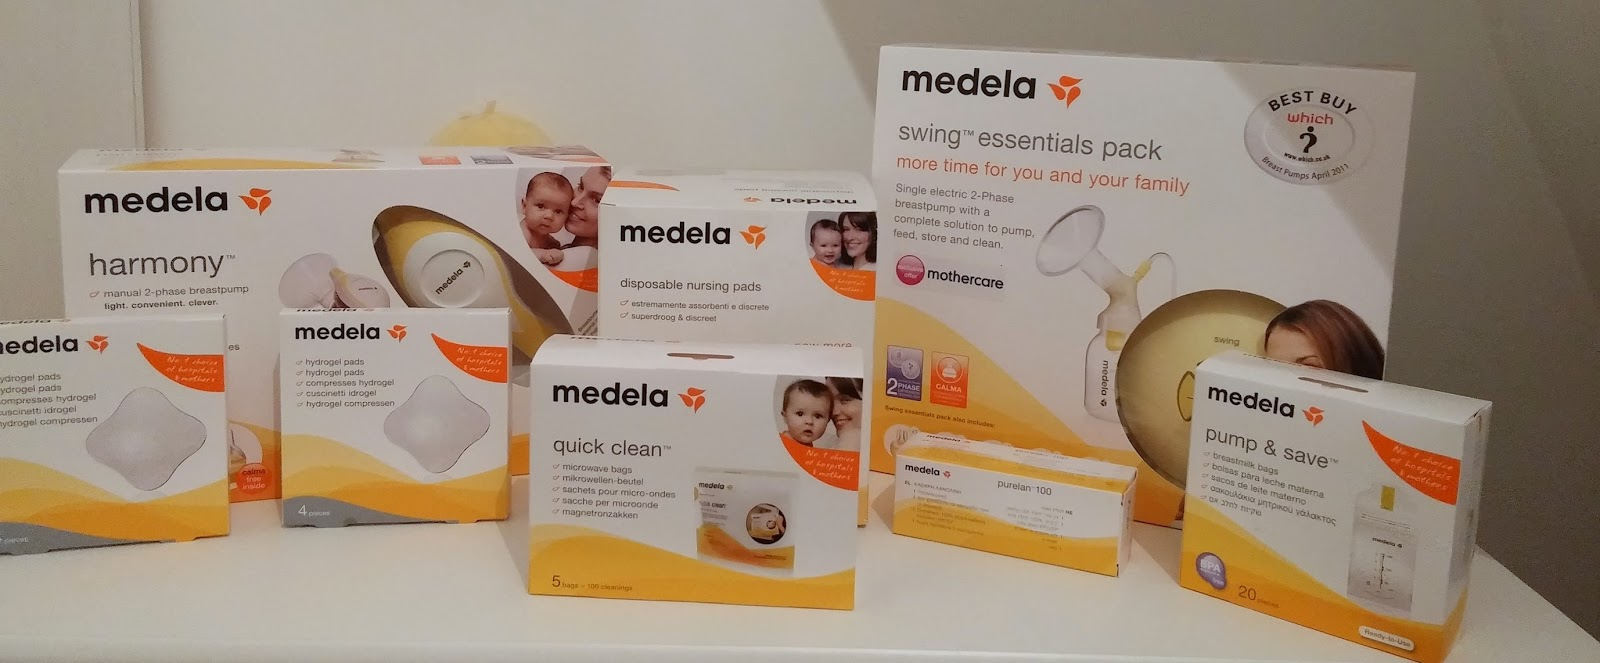 Medela breastfeeding accessories breast pumps, pump & save bags, steriliser bags, nipple cream, nipple pads